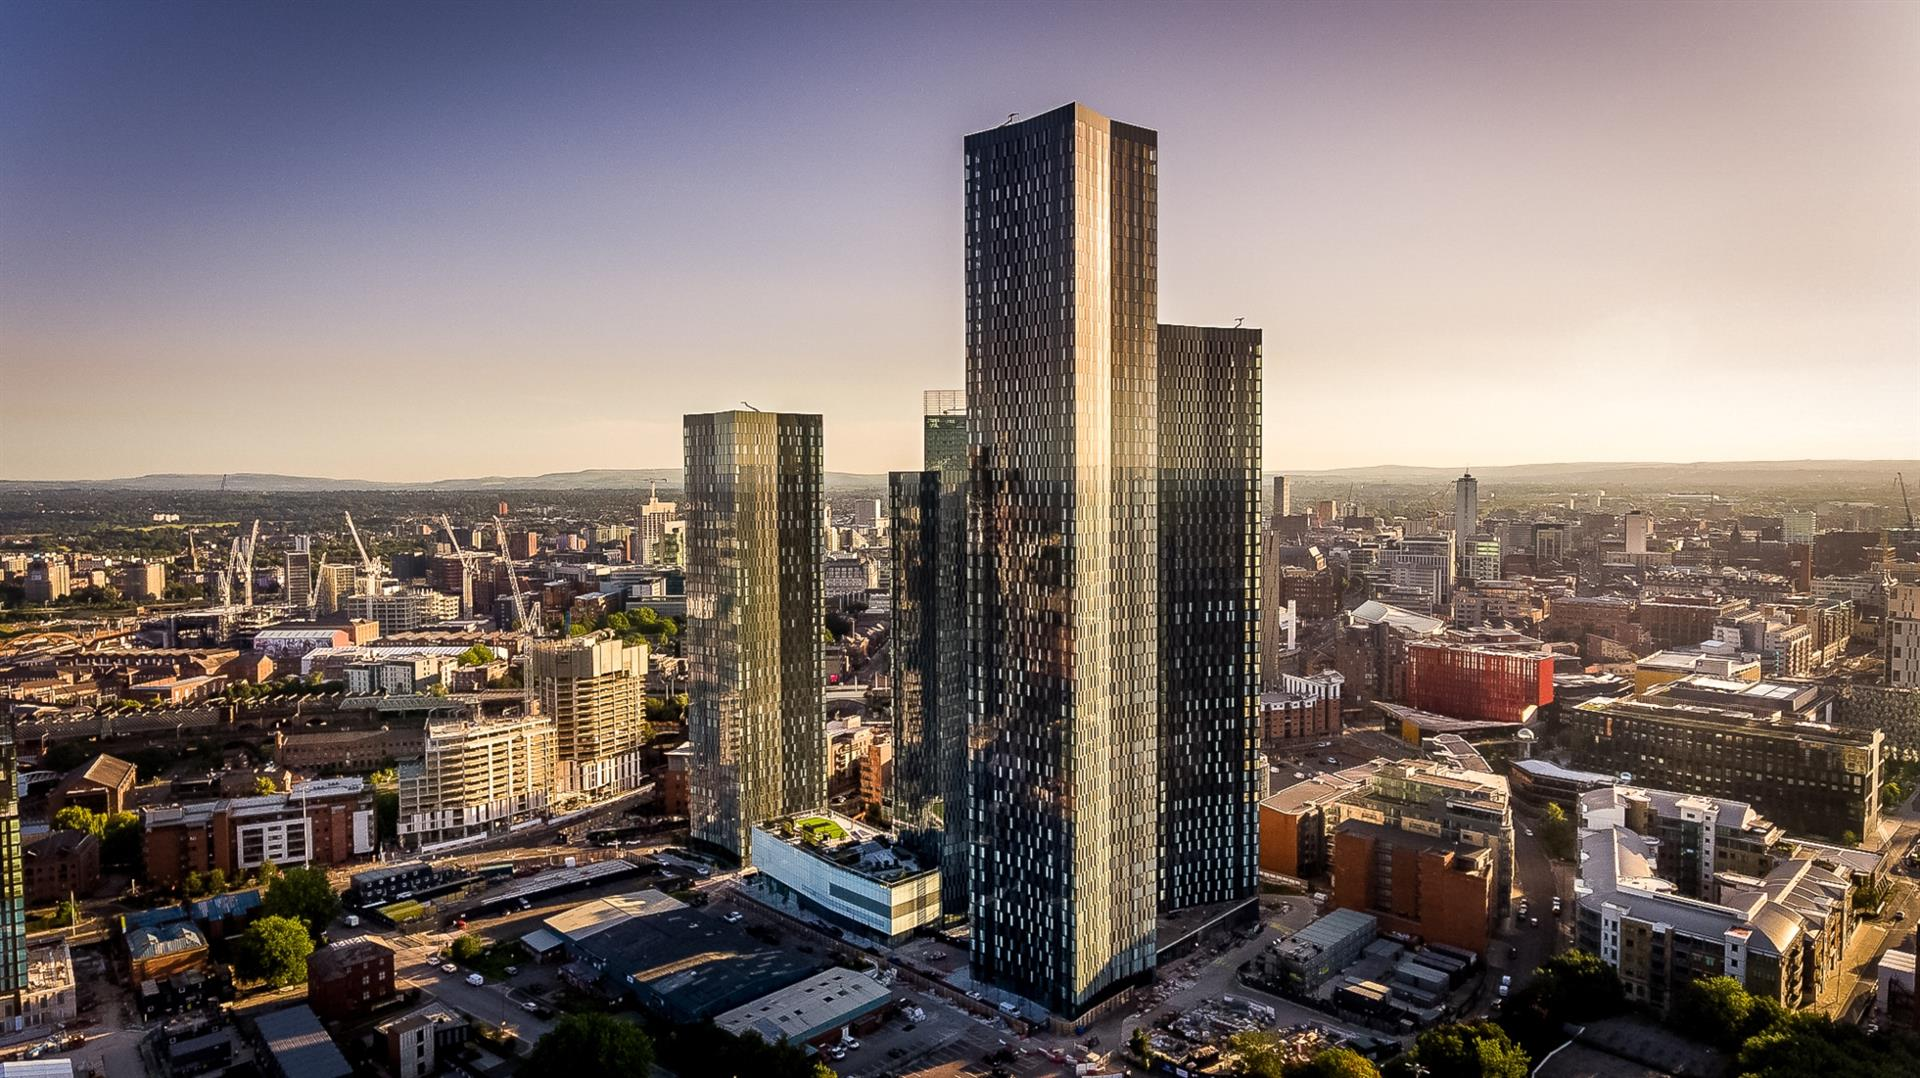 South Tower, Deansgate Square